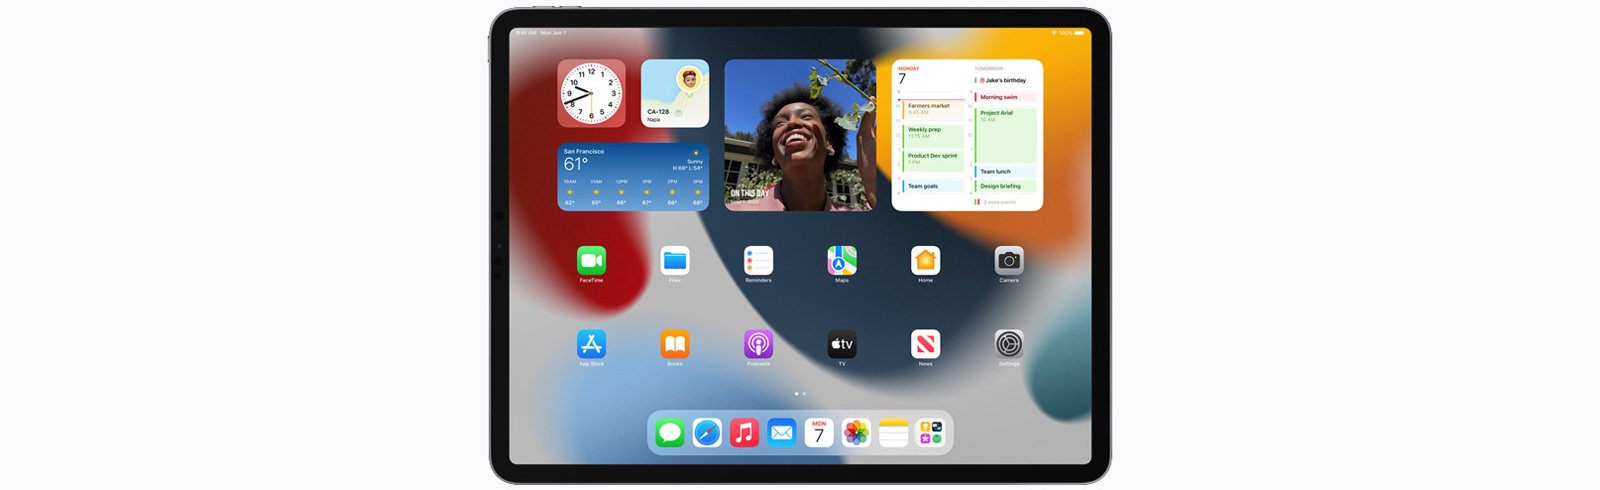 Apple previews new iPad productivity features with iPadOS 15